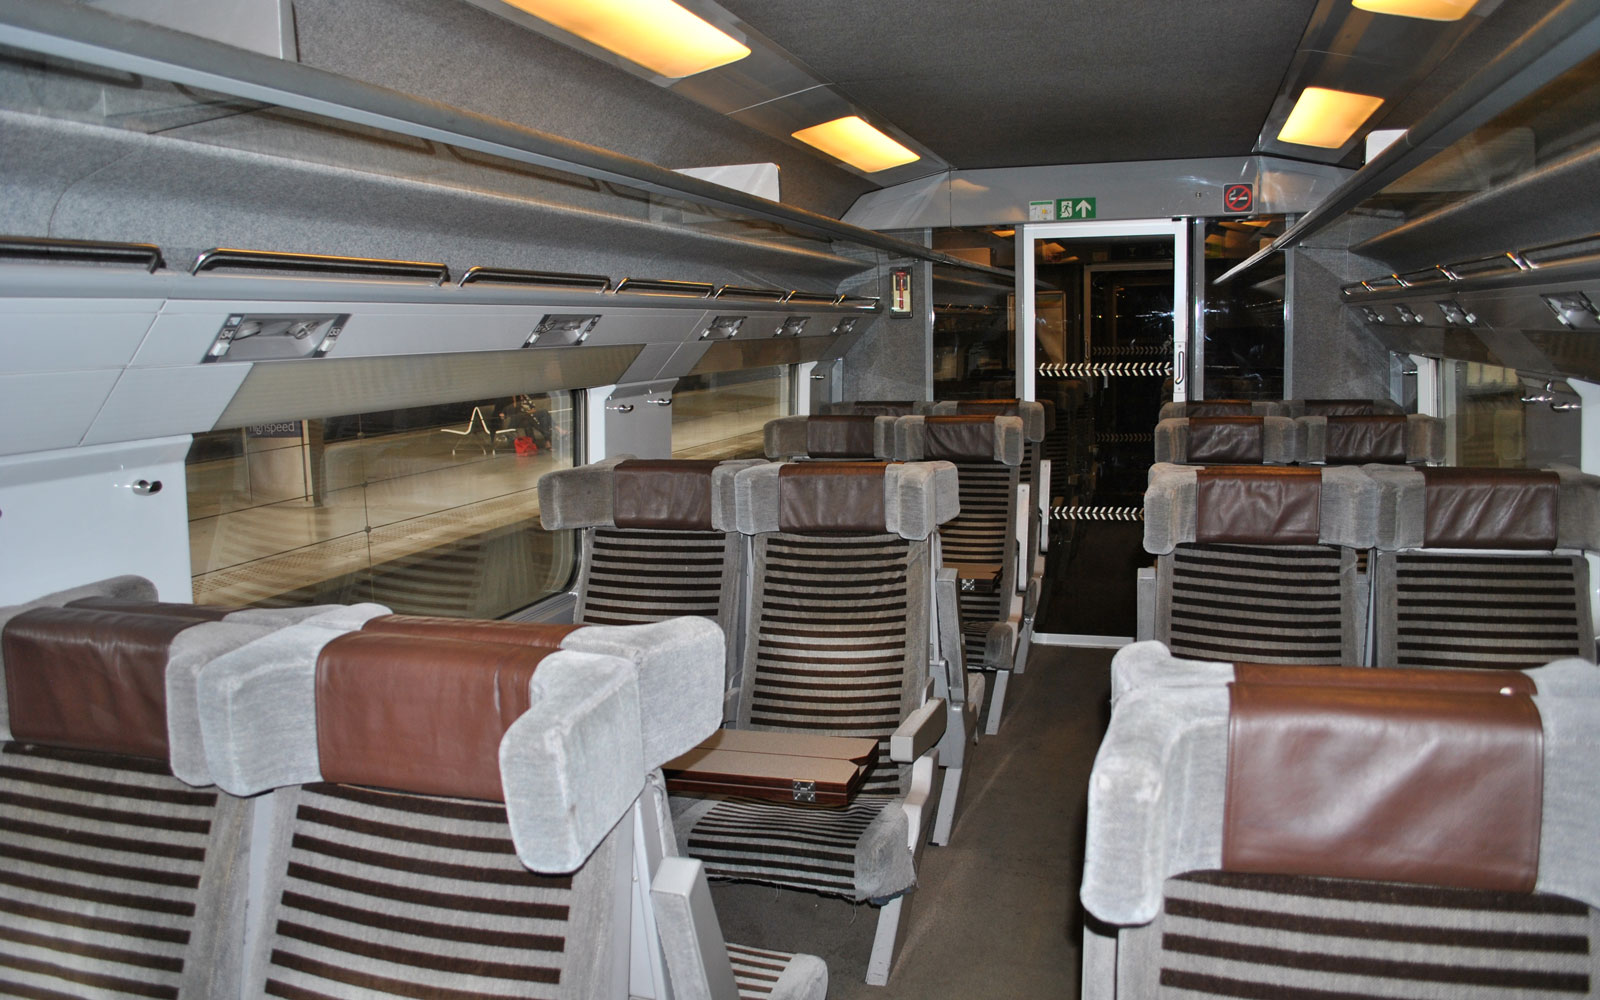 eurostar-trains-before-EUROSTAR217.jpg